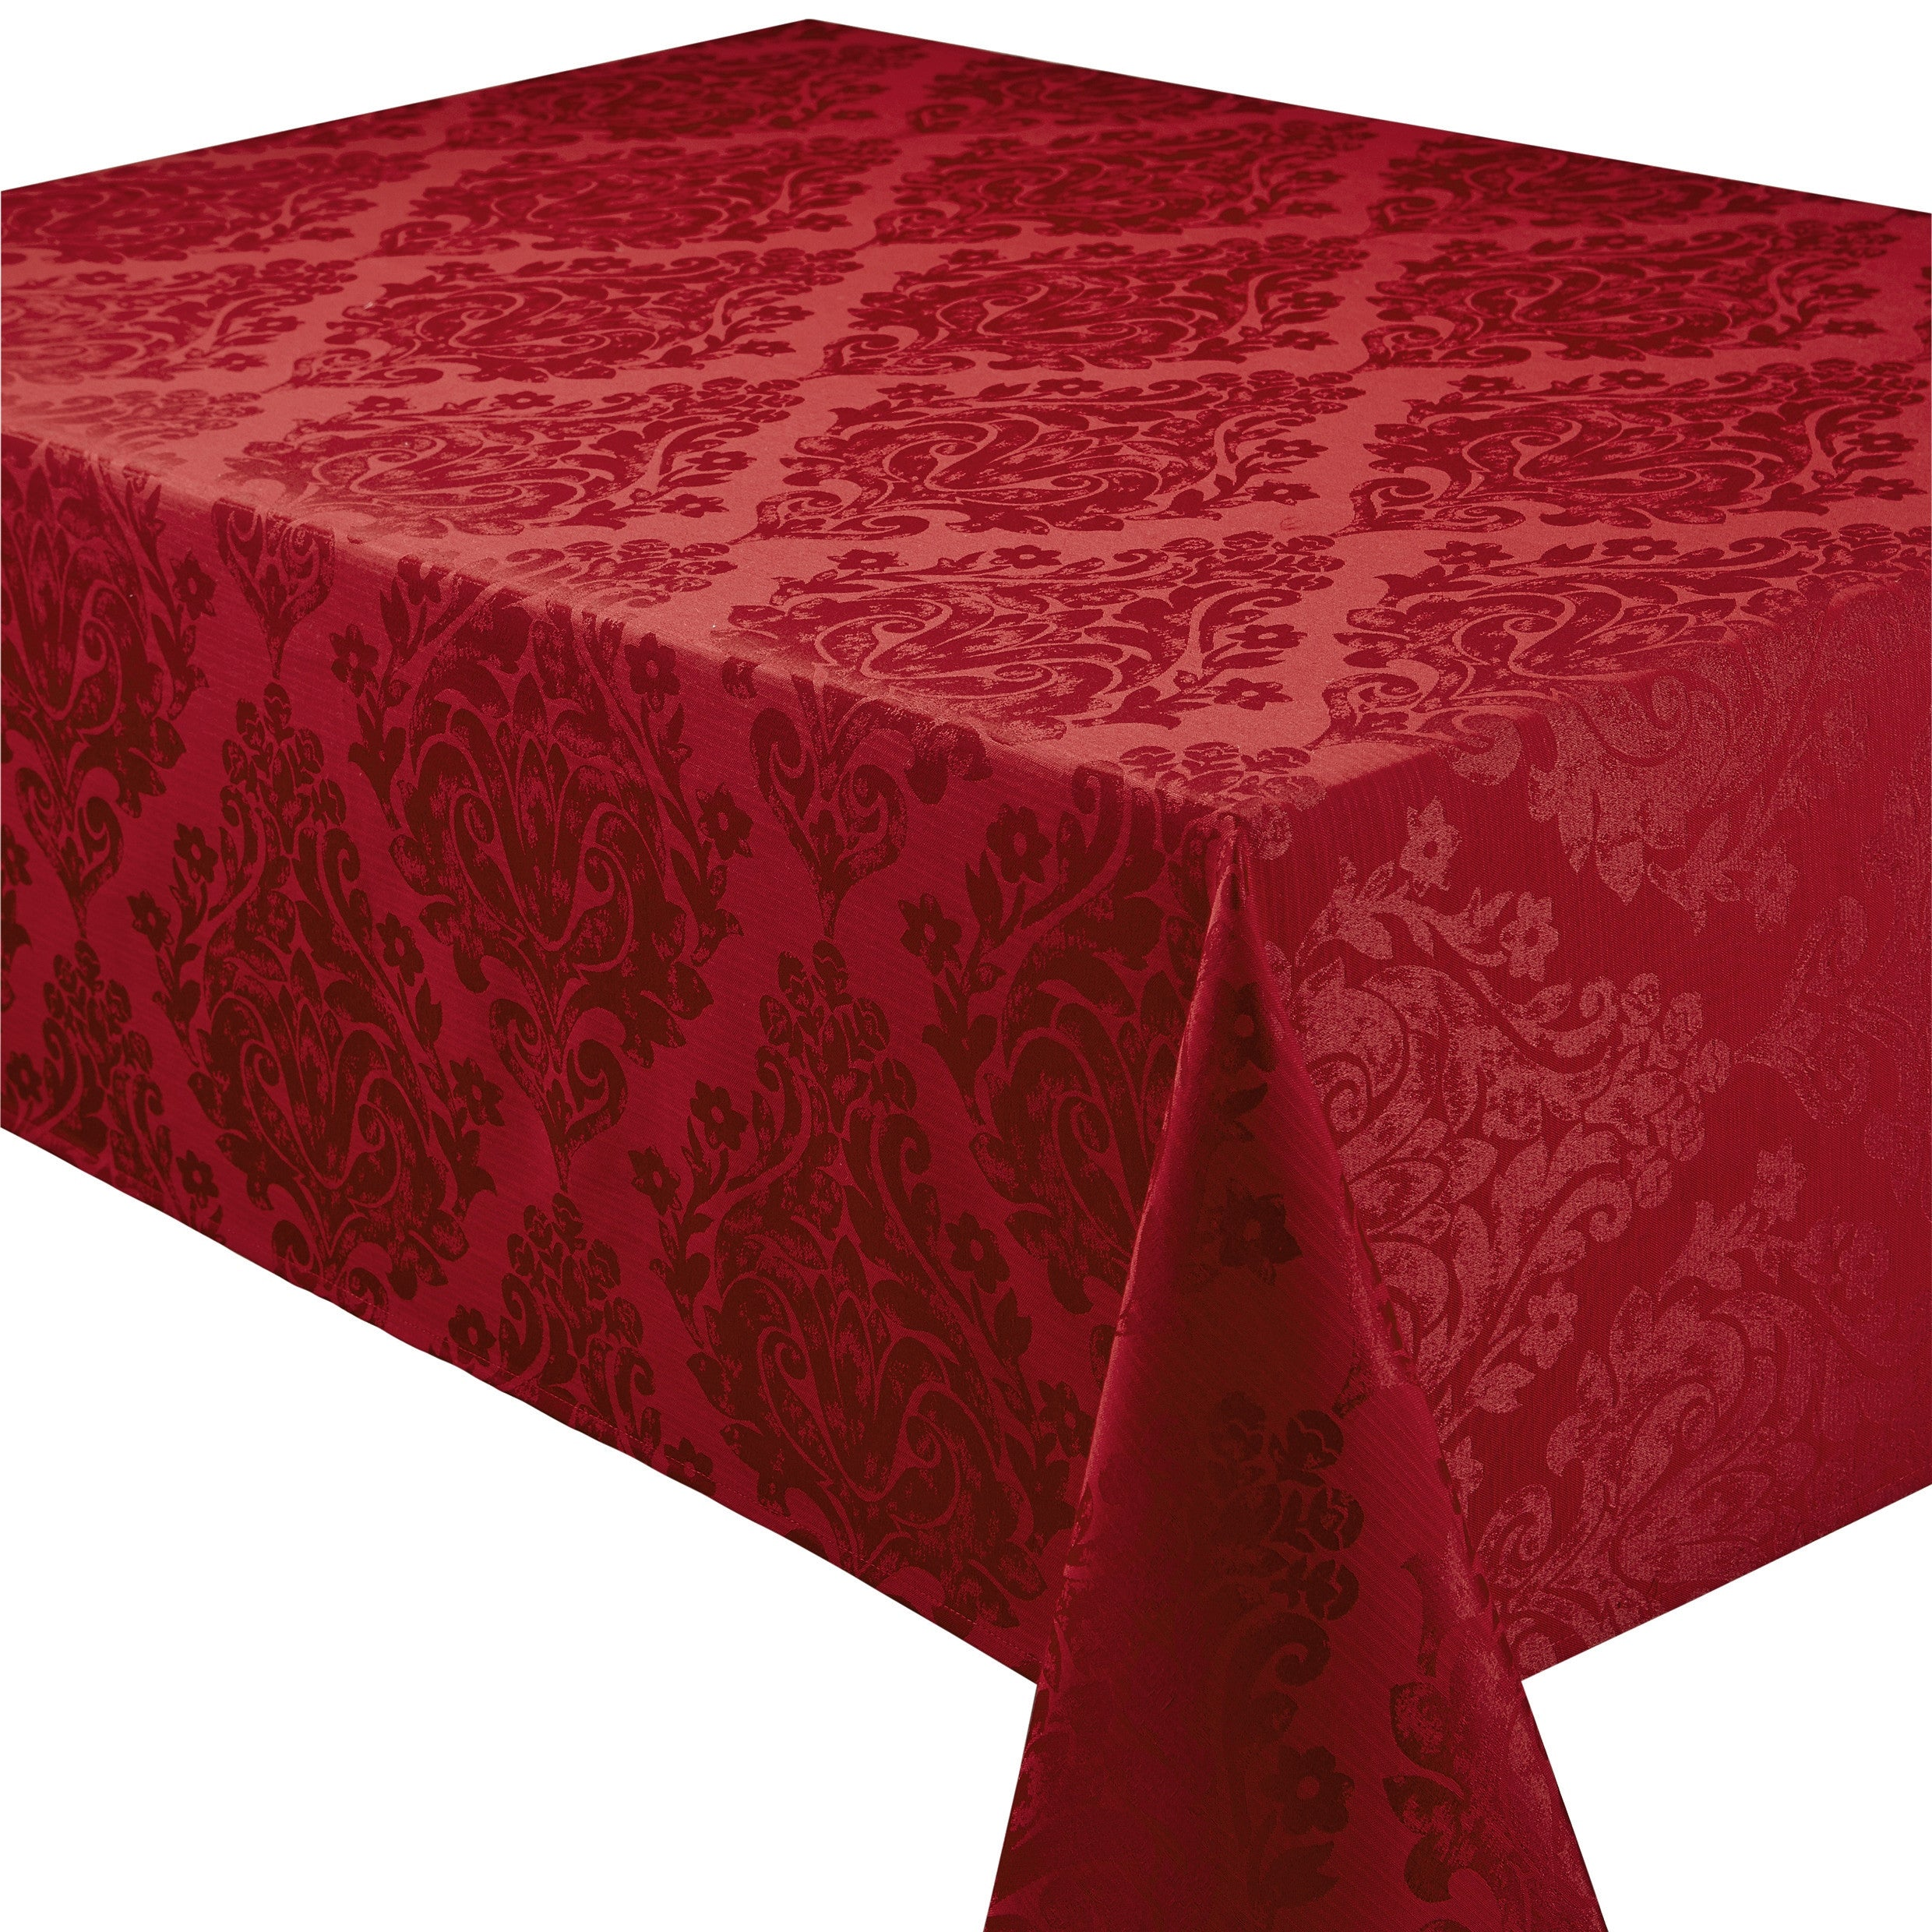 Superb Palazzo Damask Chateau Red Tablecloths And Accessories ...